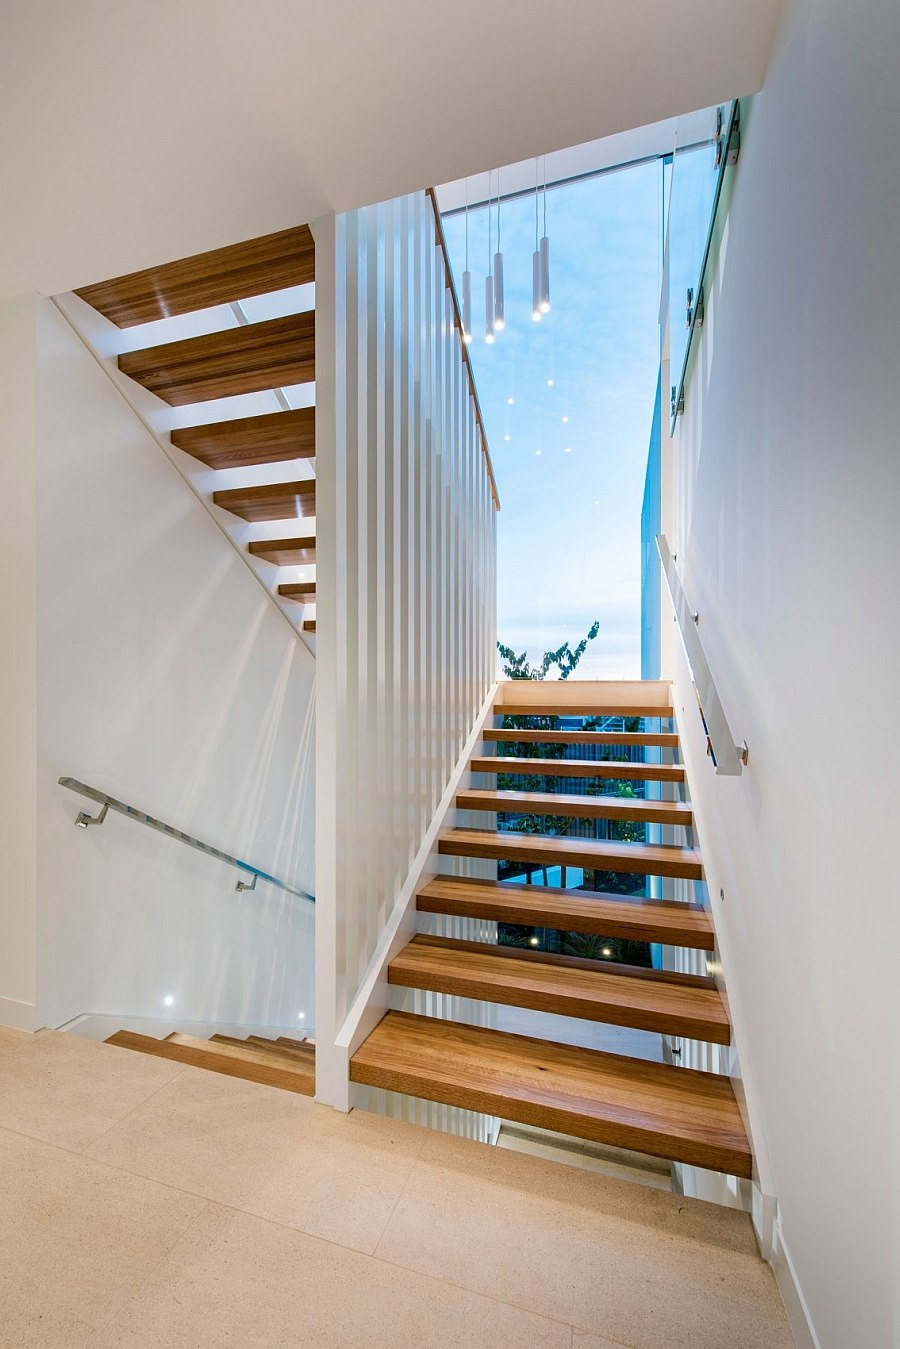 Glass roof above the staircase allows in natural light